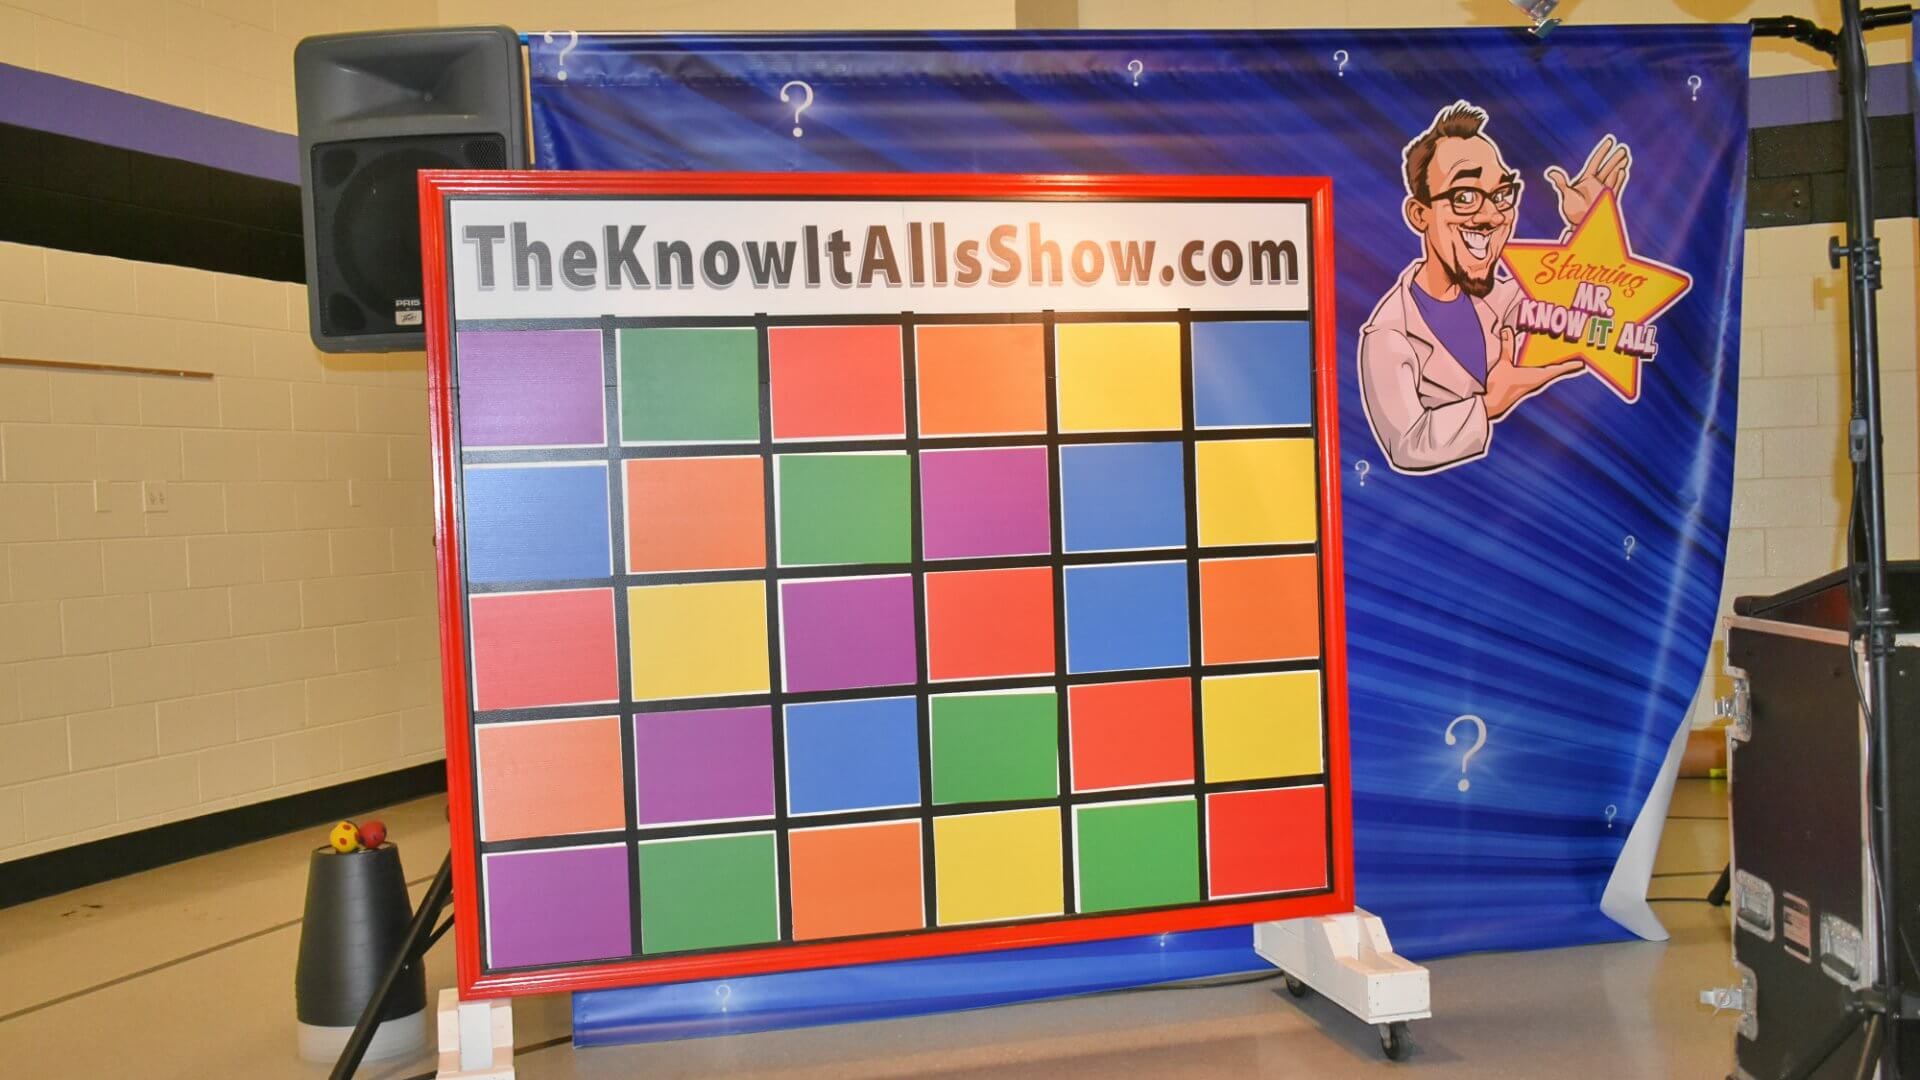 Know It Alls Show Wall of Commotion